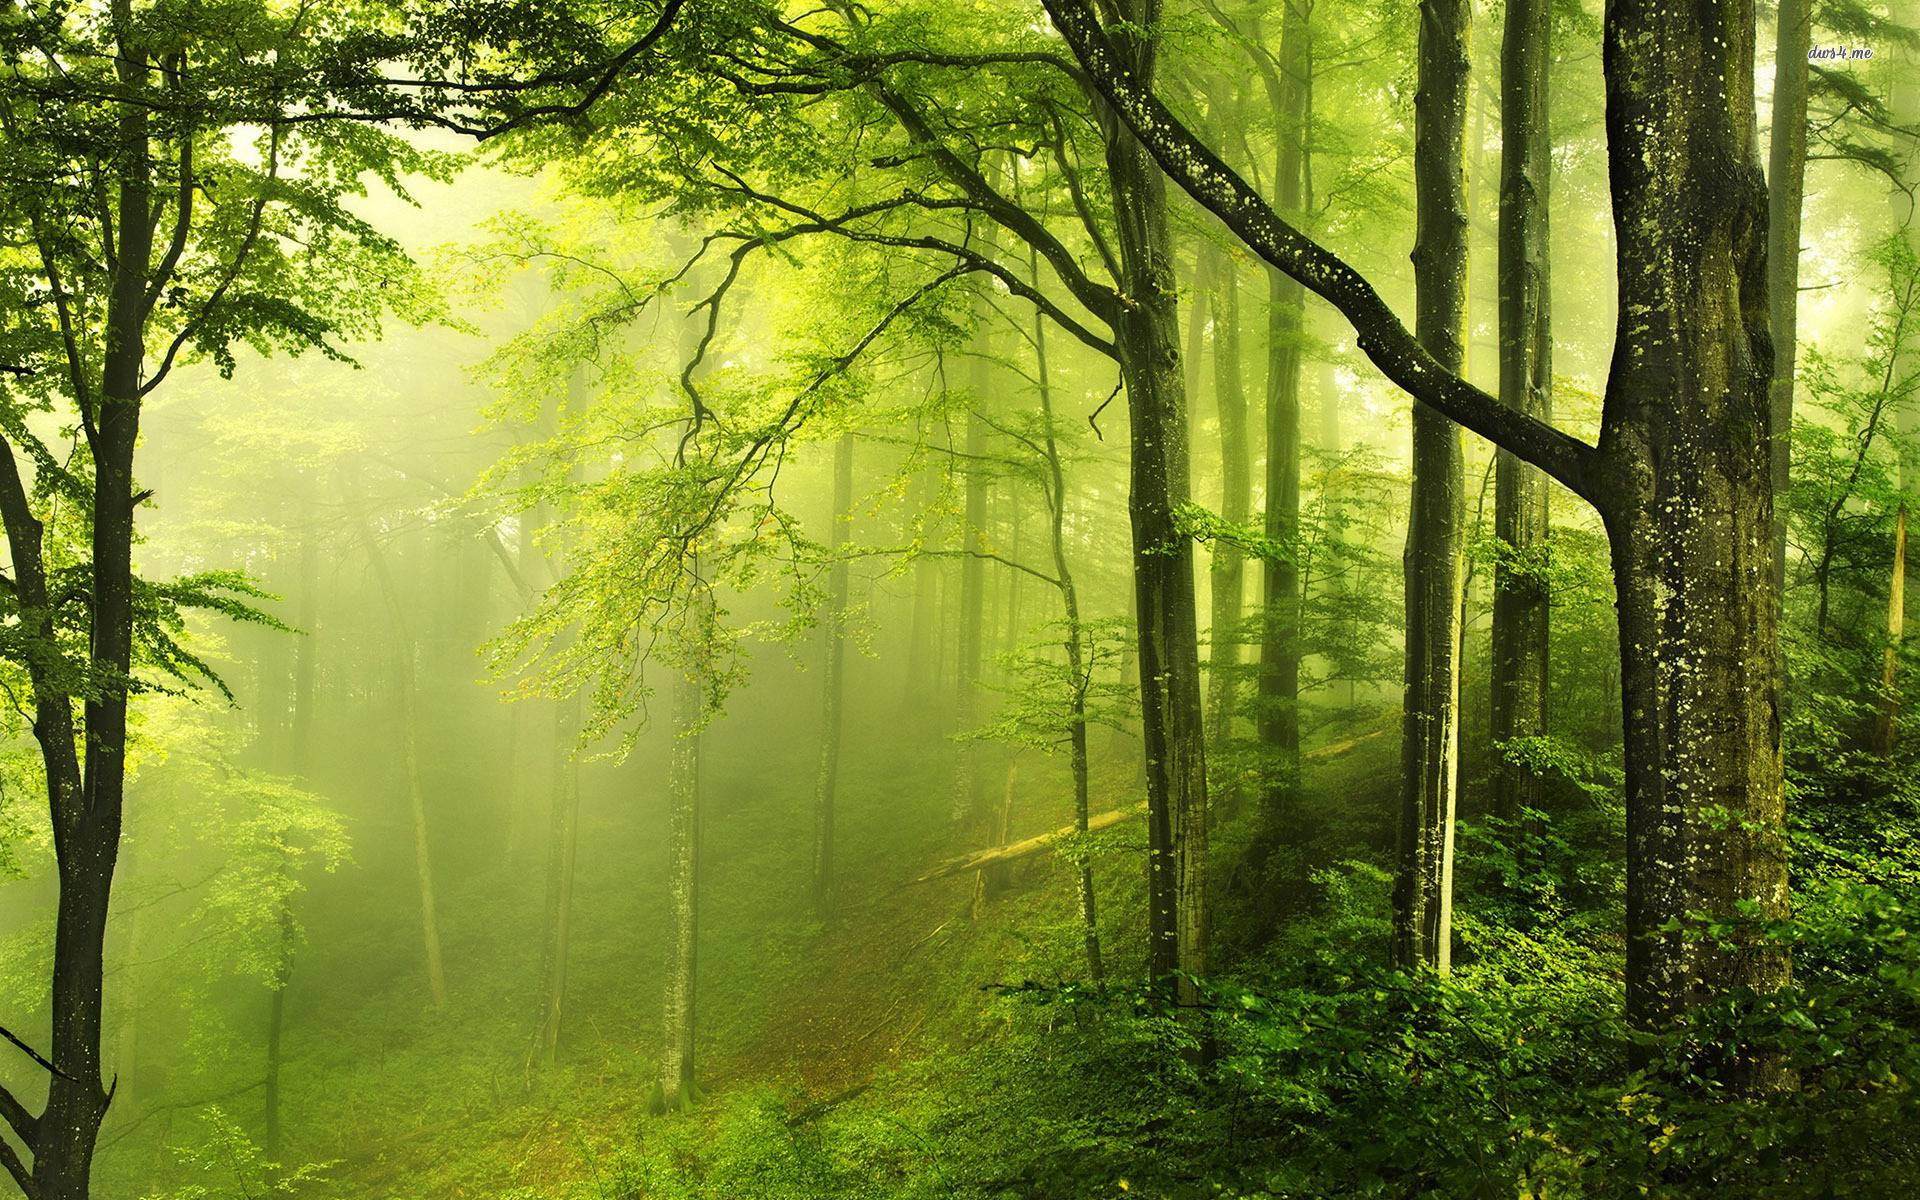 Forest Green Wallpapers - Top Free